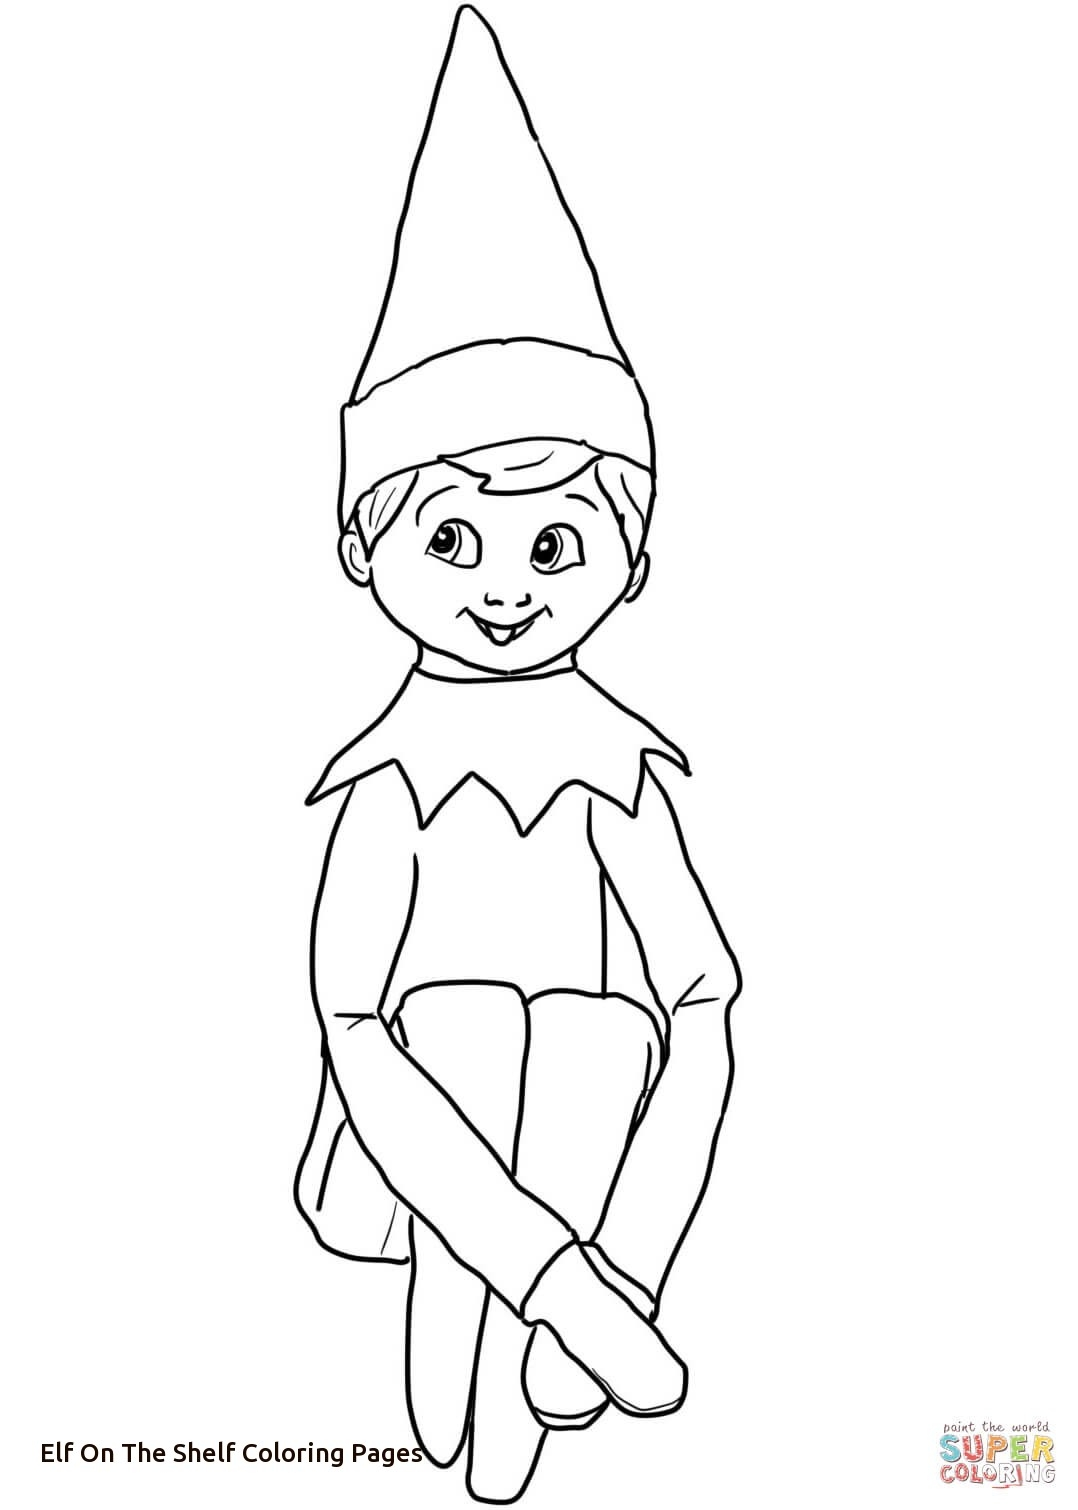 28 Elf Coloring Pages Printable Images | FREE COLORING PAGES - Part 3